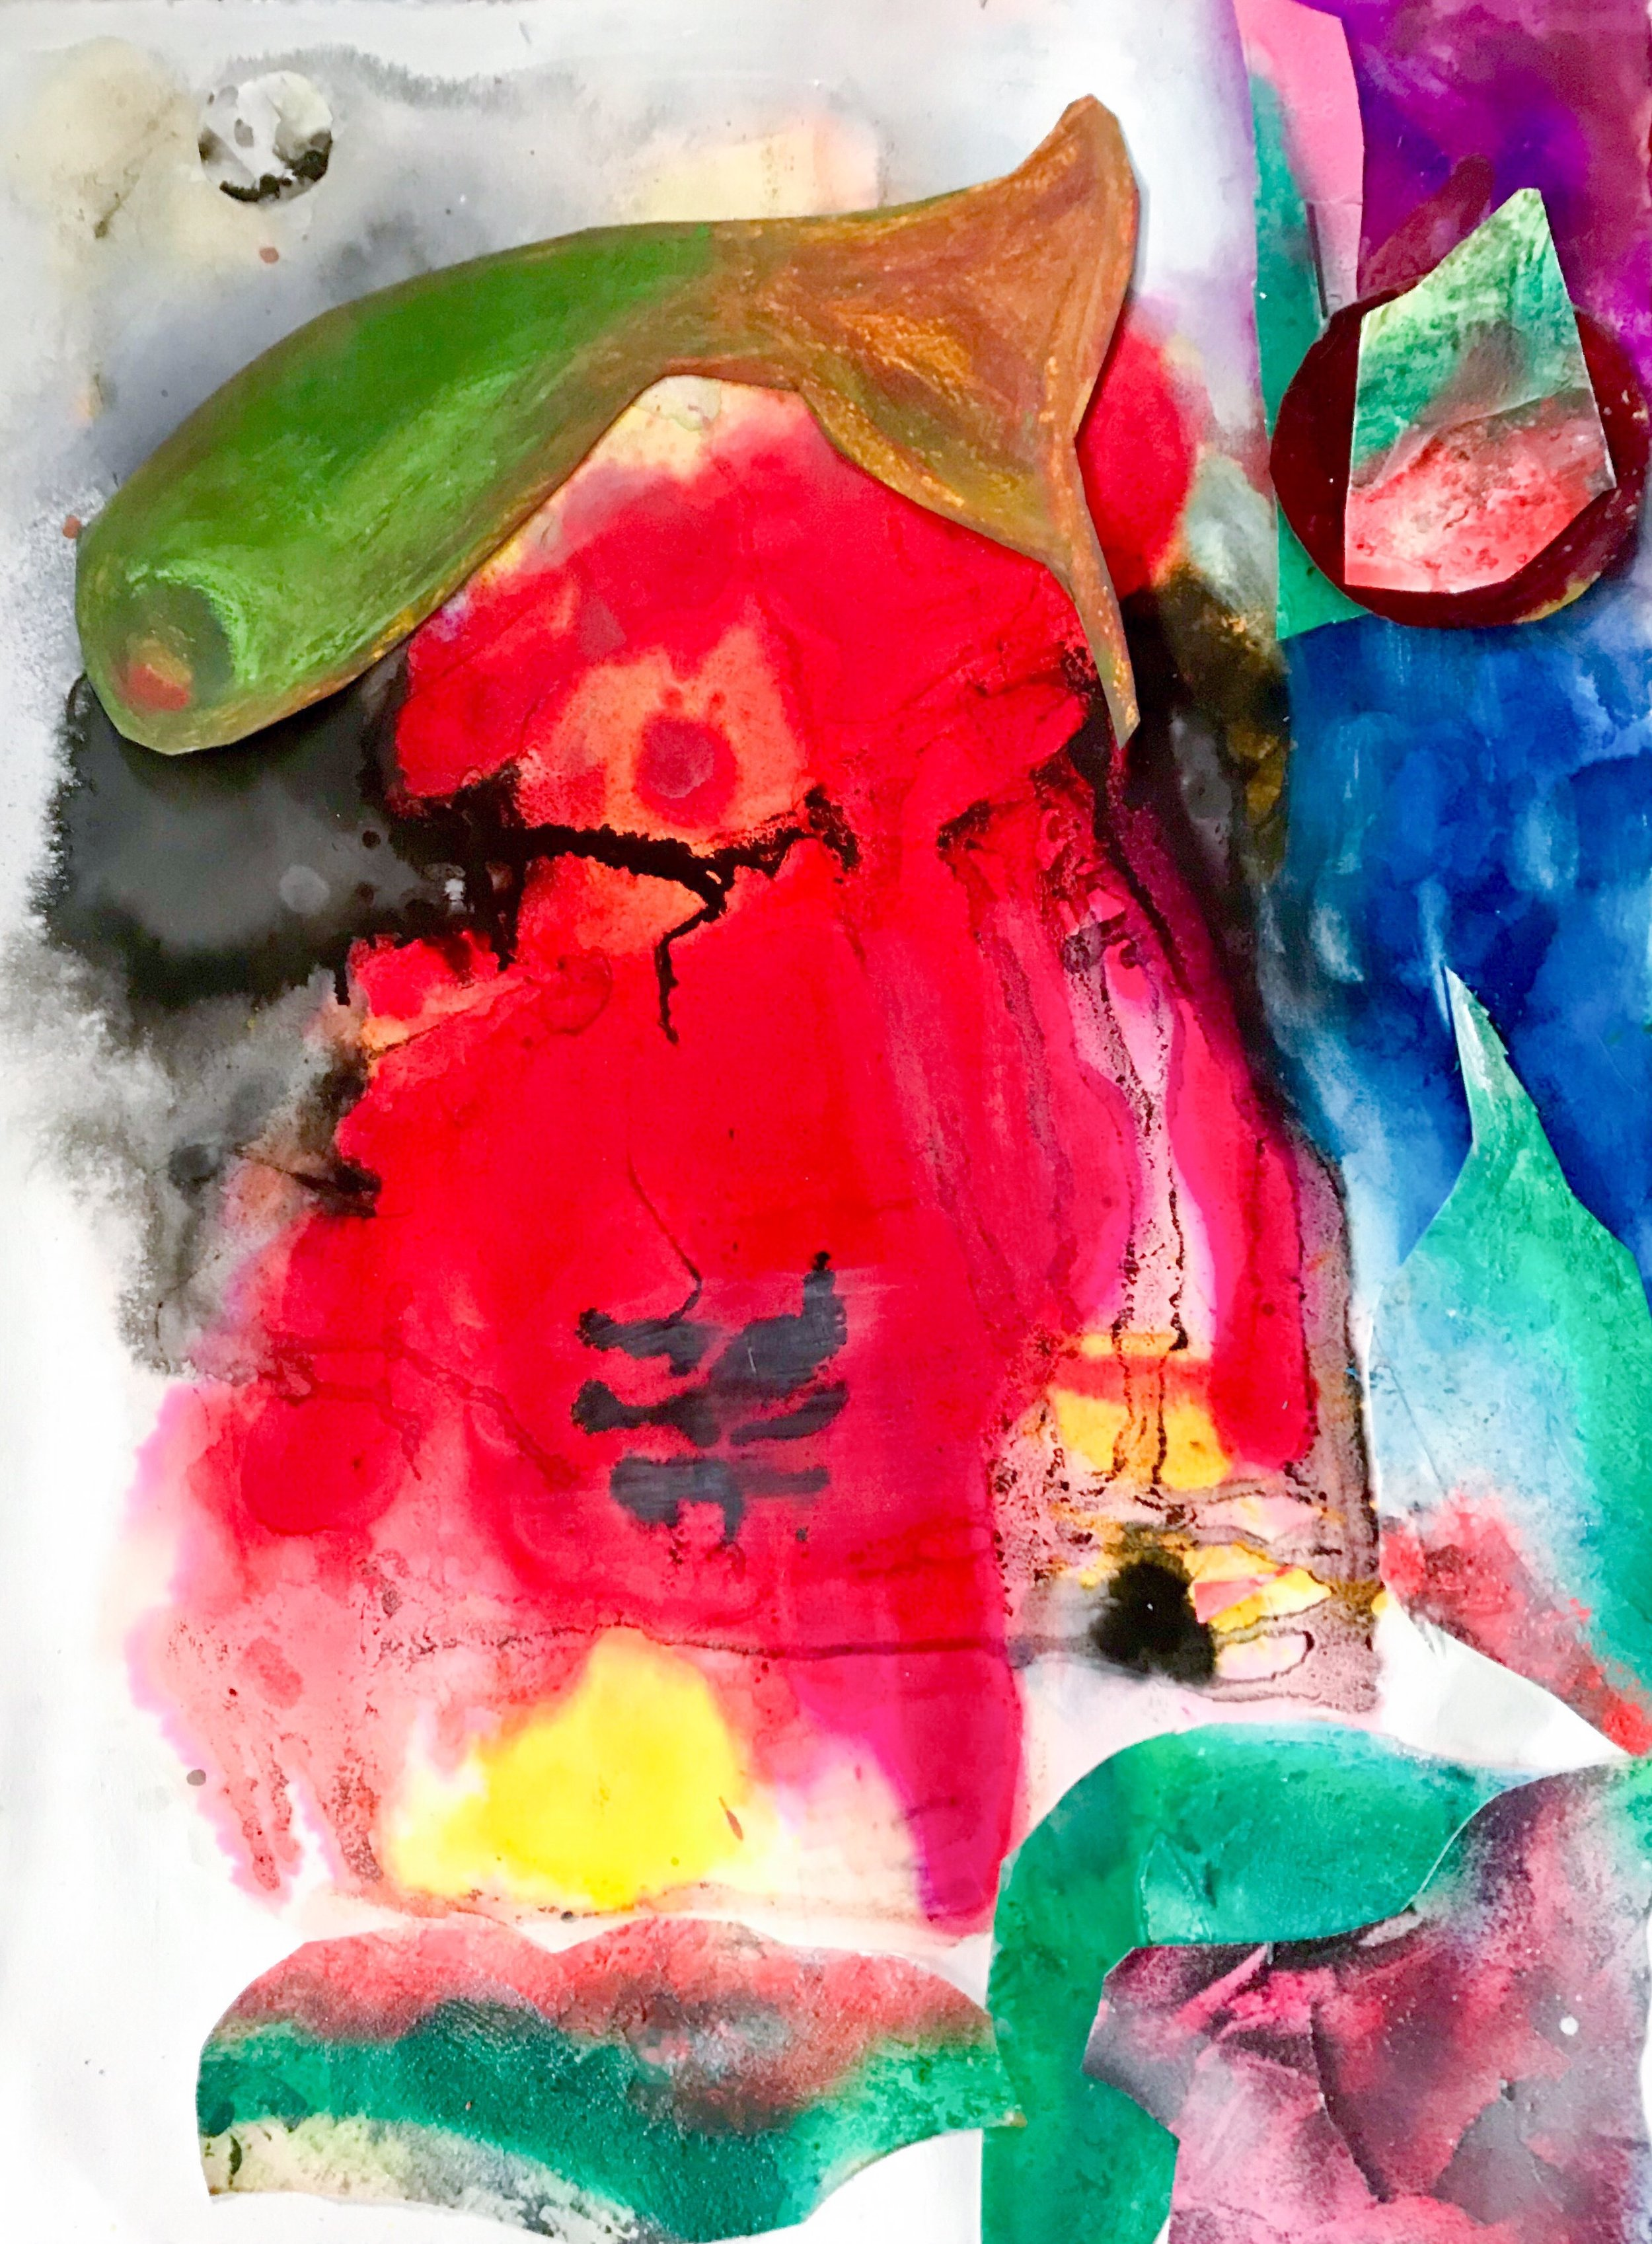 Fish jumped out of water confused, abstraction or realism